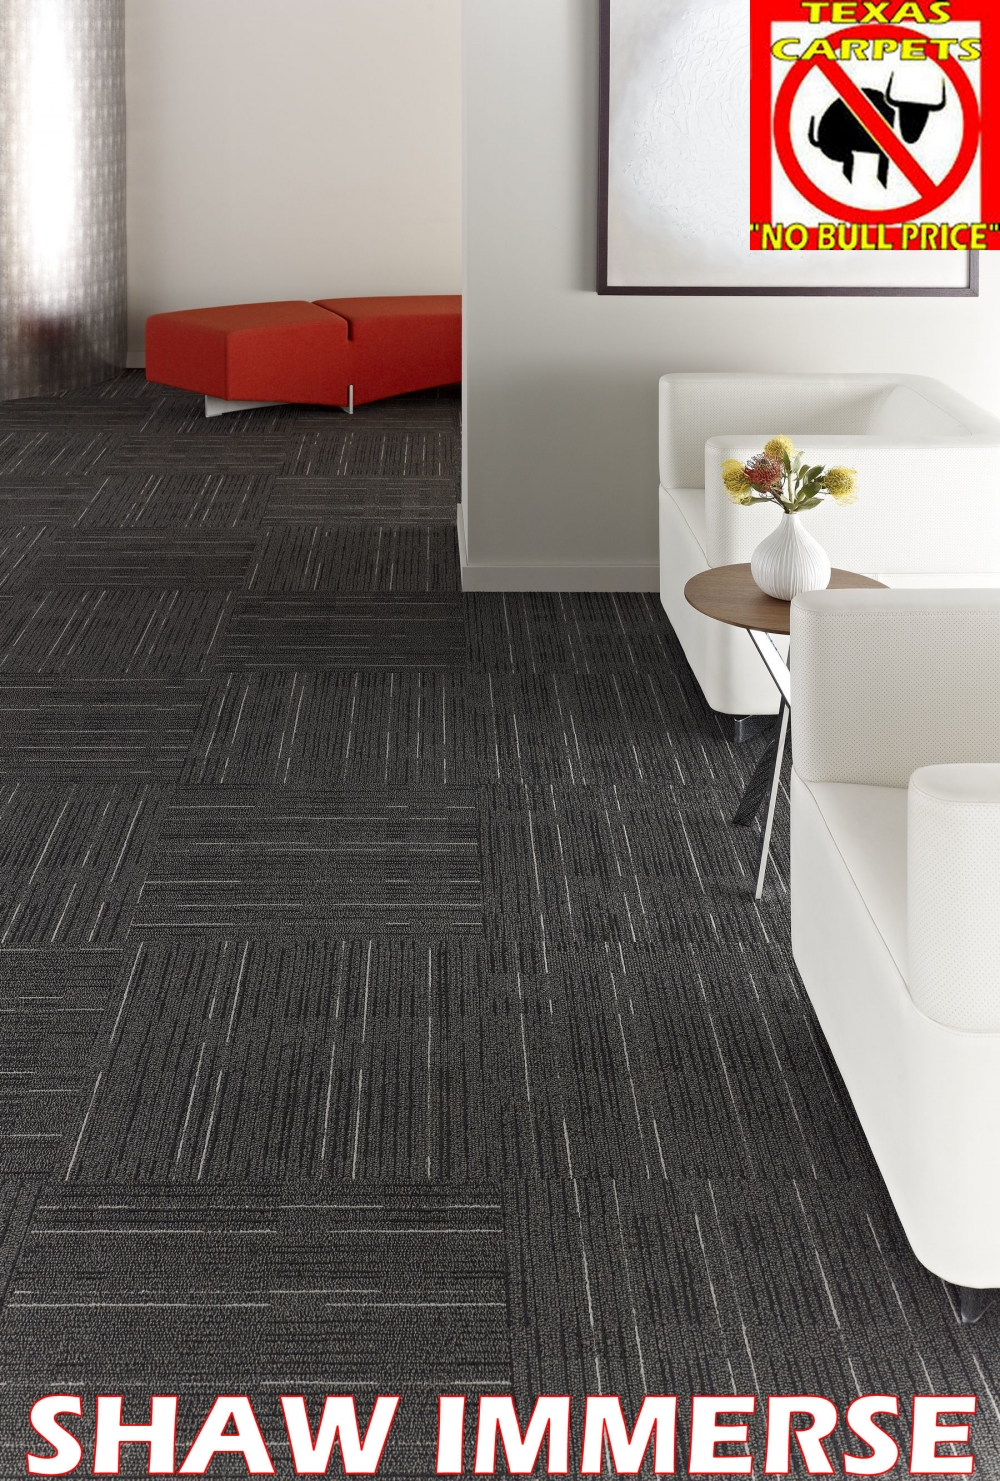 Immerse Shaw Tile